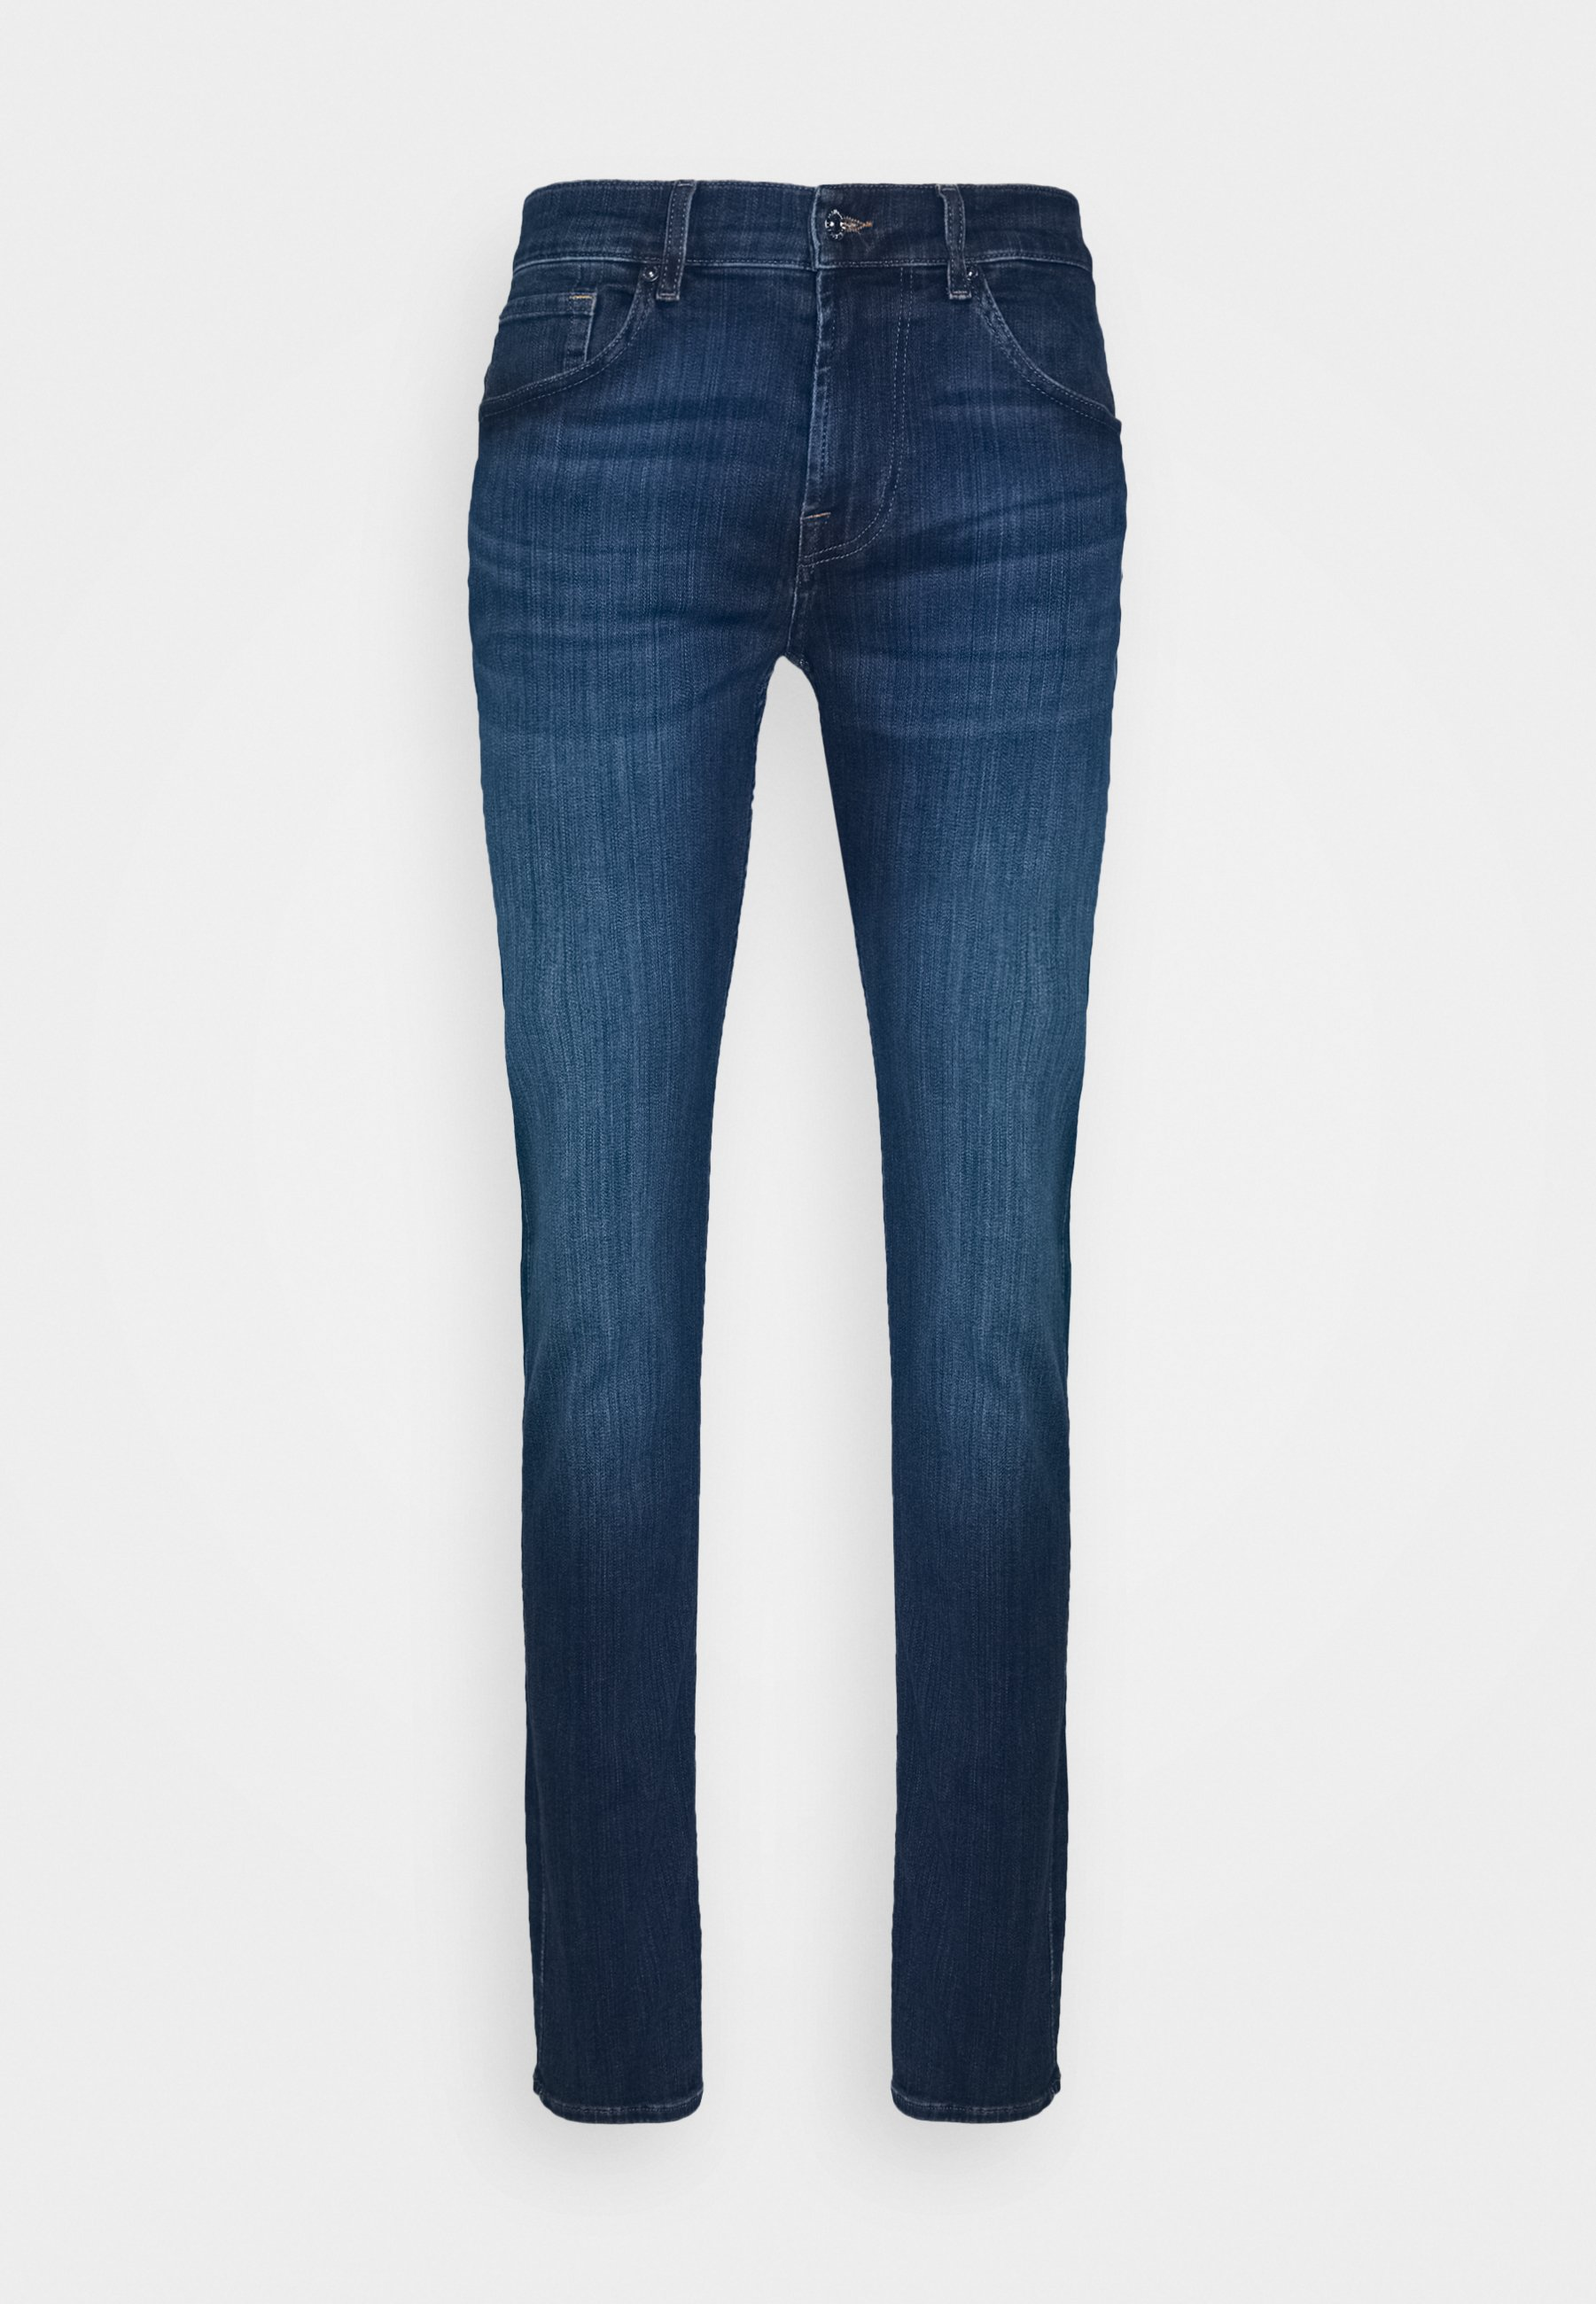 7 For All Mankind Slimmy Stretch Tech - Jeans Slim Fit Dark Blue